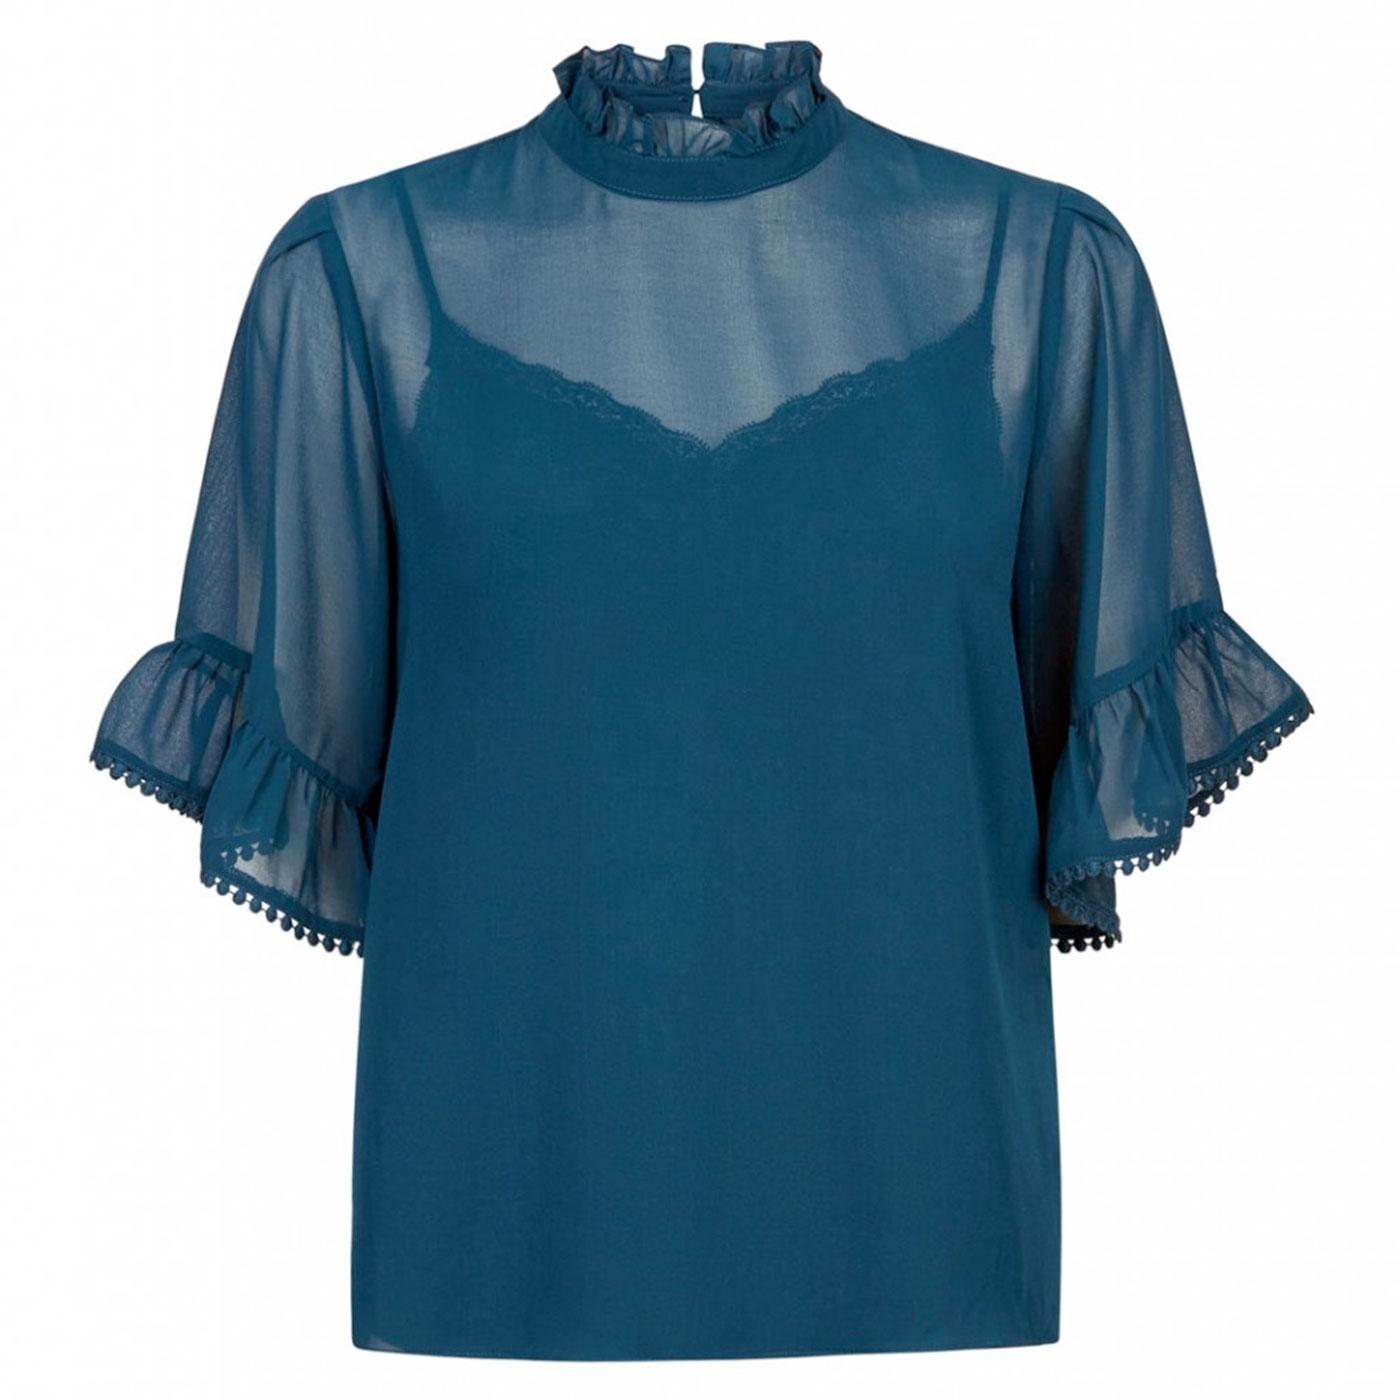 Bobble Top TRAFFIC PEOPLE Retro Sheer Top in Blue